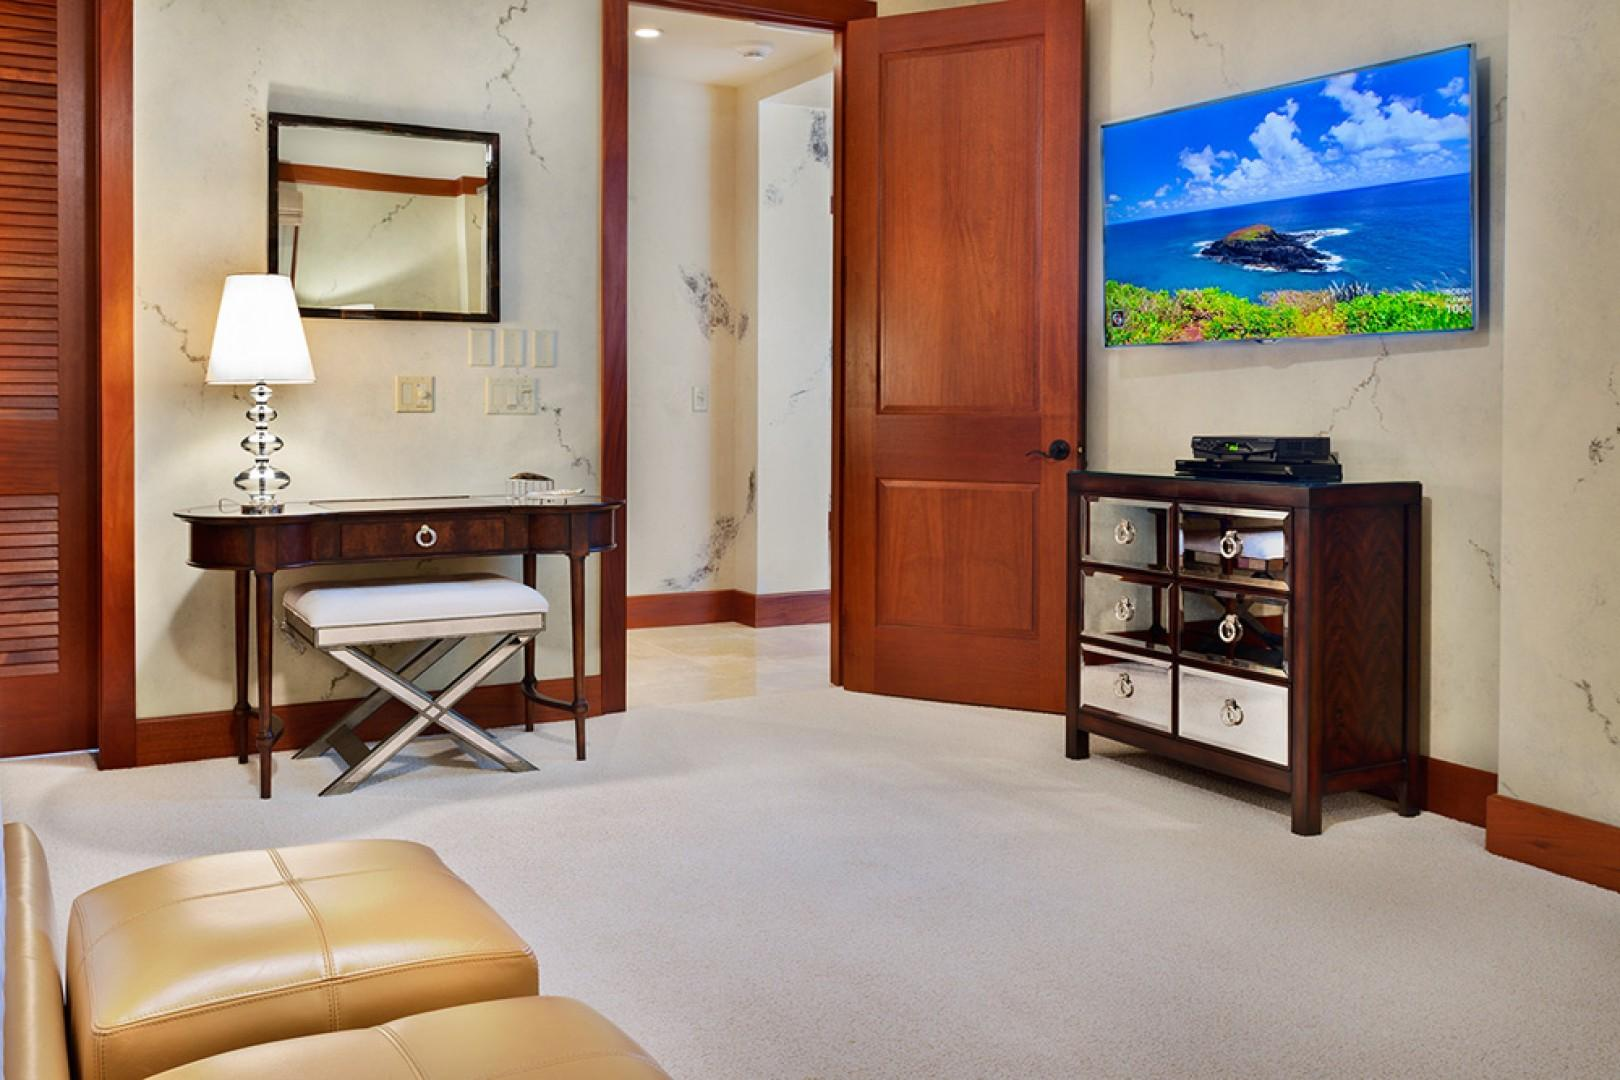 A201 Royal Ilima - The Ocean Front and Beach Front View Master Bedroom Suite with Leather Seating, Vanity, King Bed, Samsung HD Smart TV/DVD and En-Suite Expansive Private Bath with Veranda